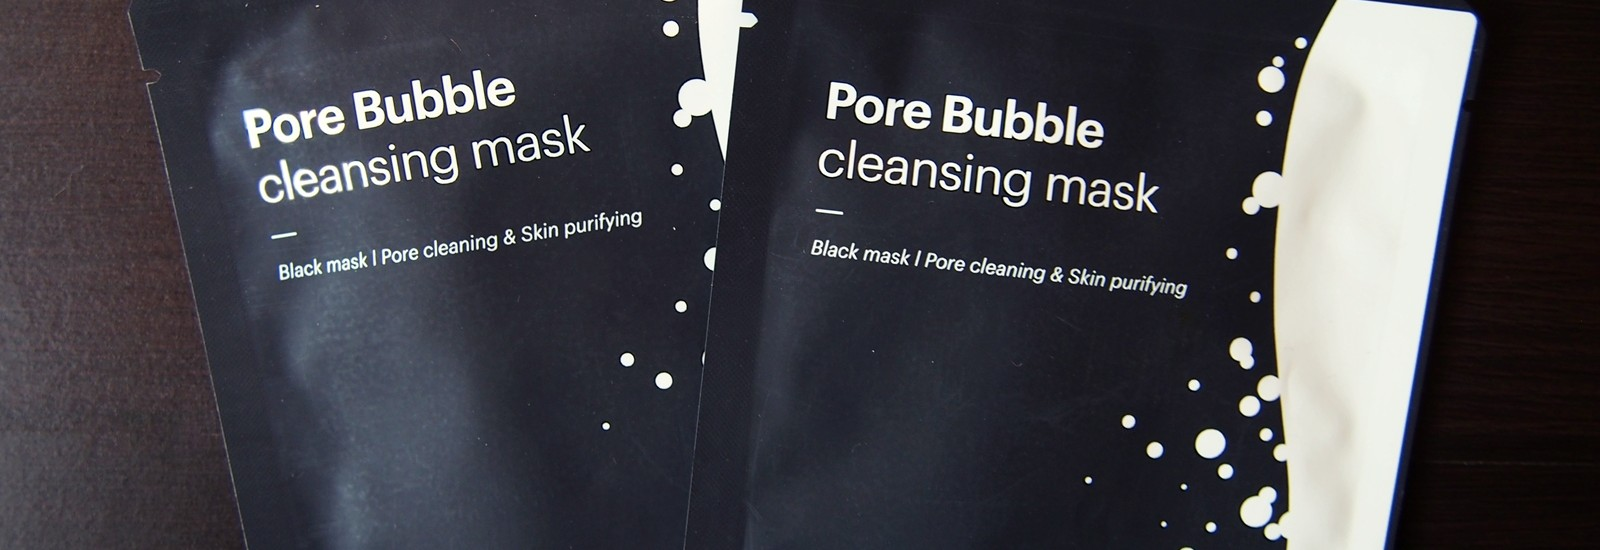 Pore Bubble Cleansing Mask 2